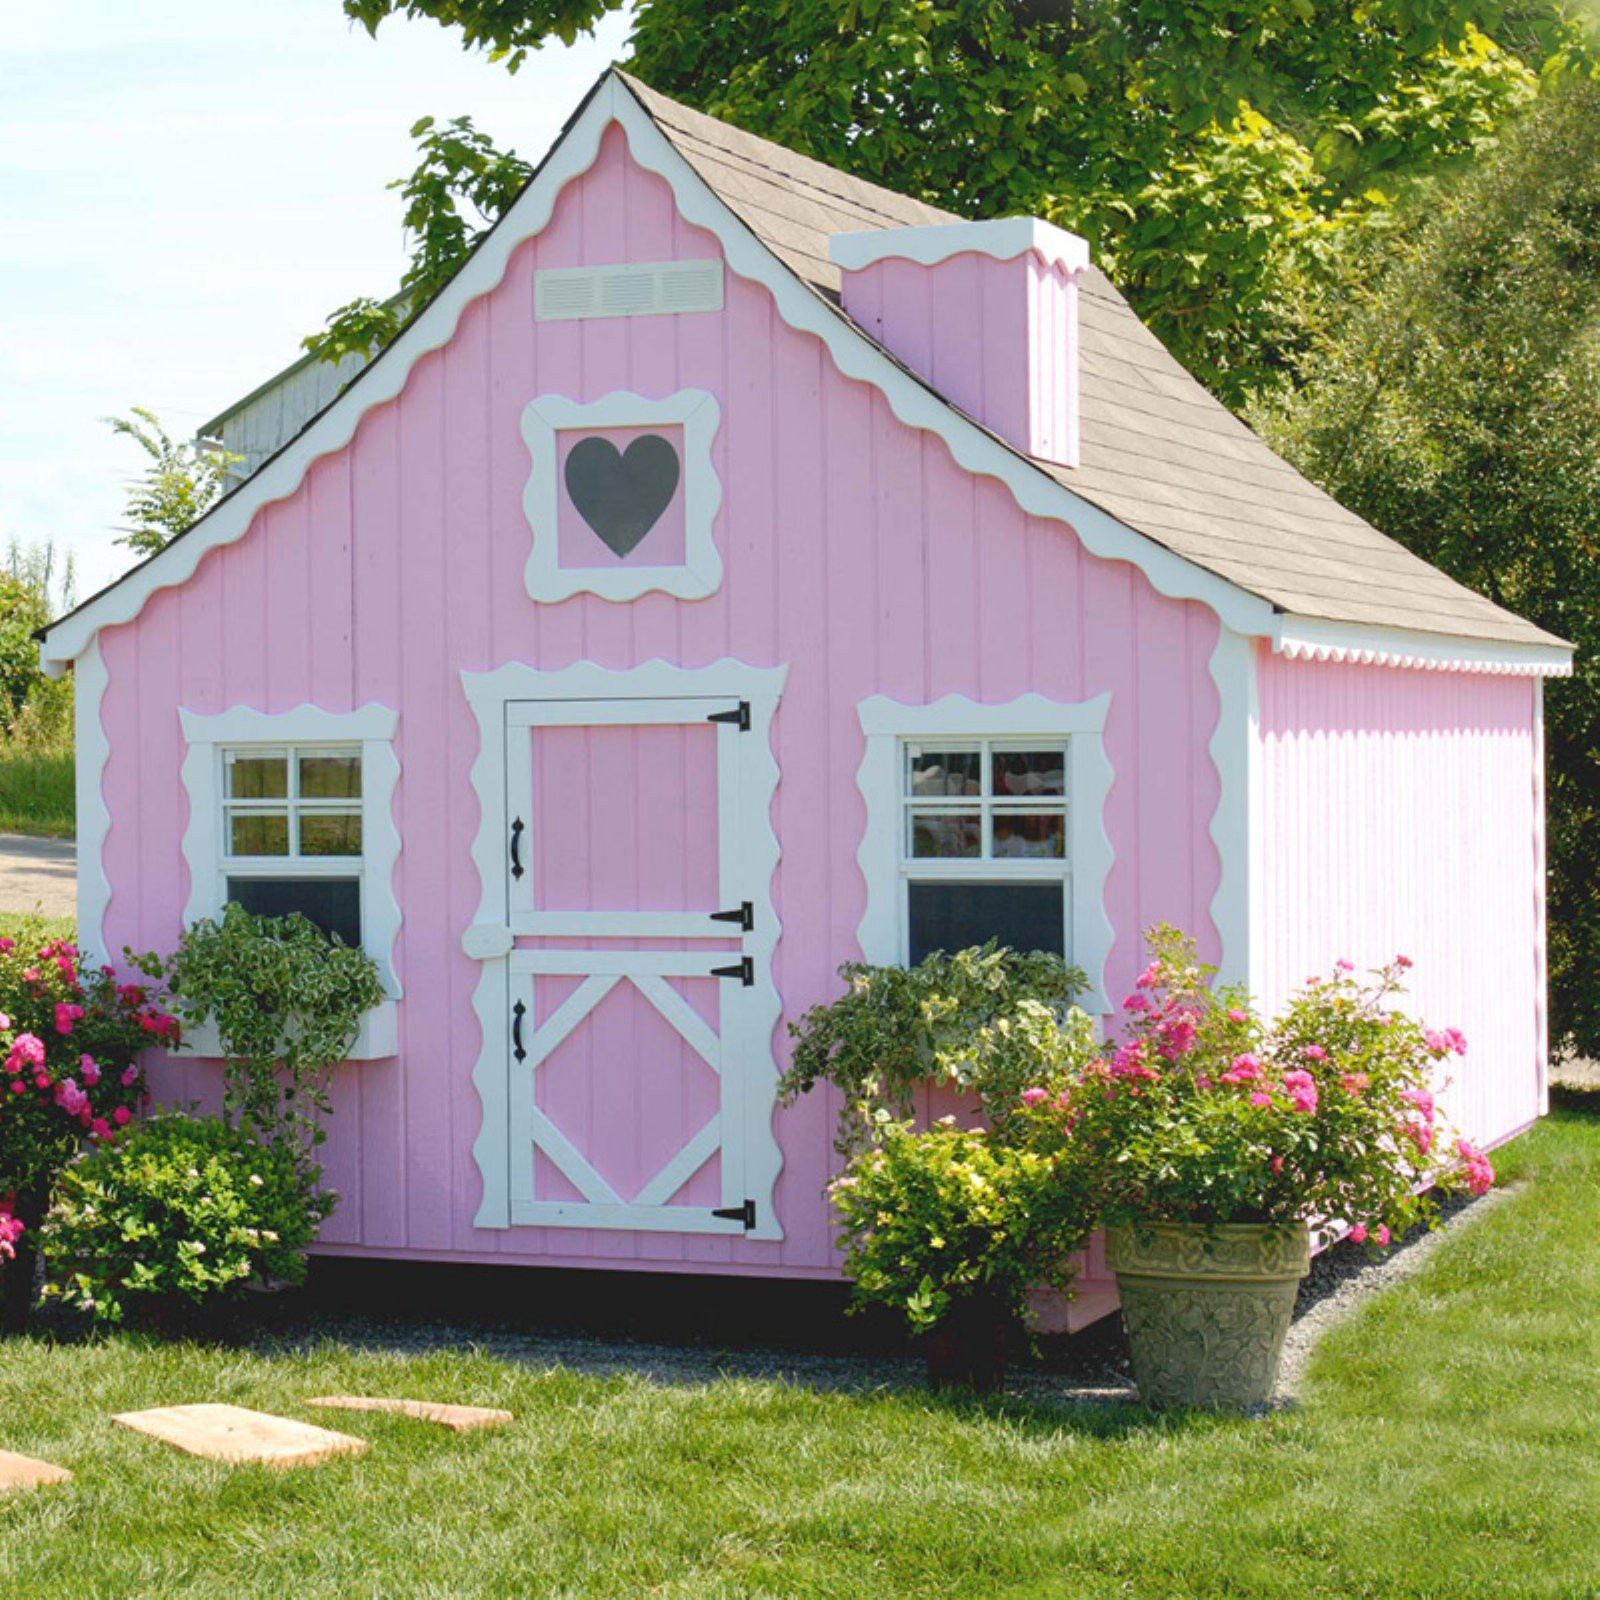 Little Cottage Gingerbread 8 x 12 ft. Wood Playhouse by Little Cottage Co